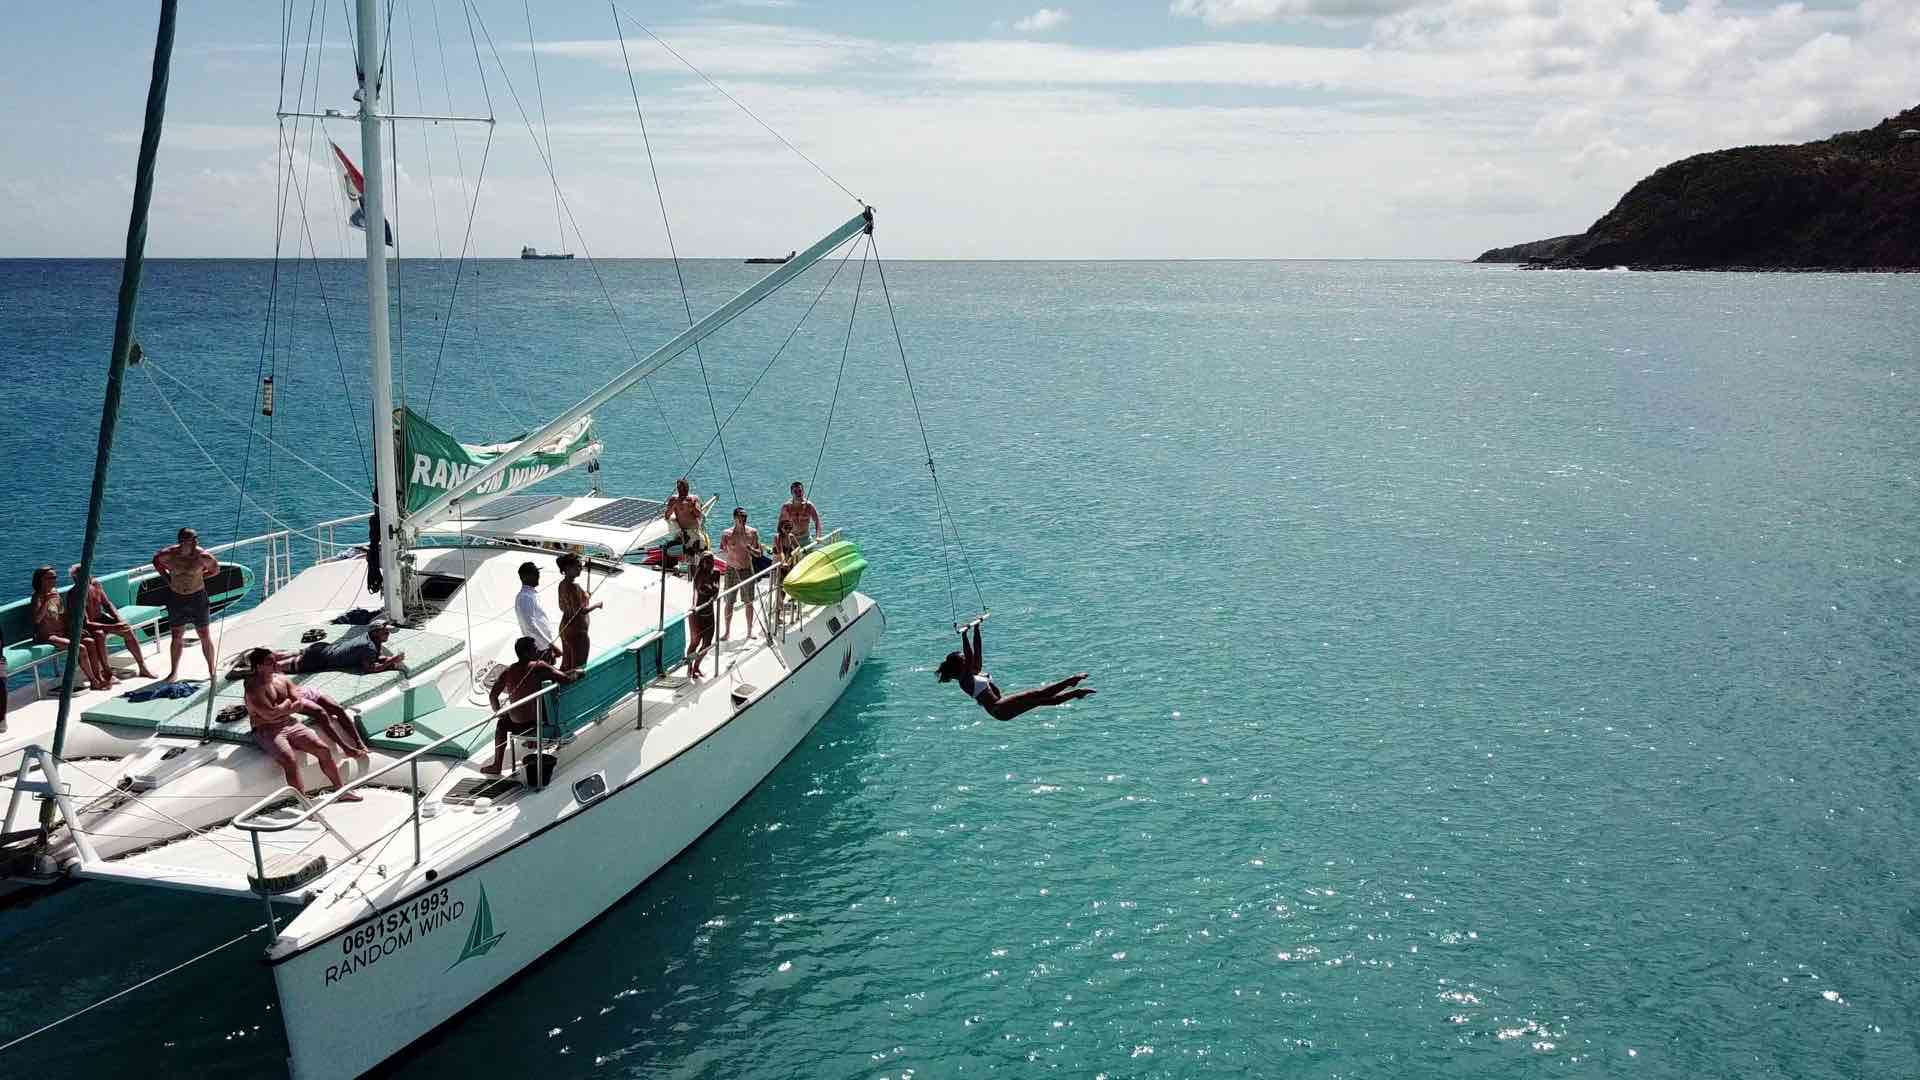 Random Wind Charters offer fun things to do in St Martin like sailing and jumping into the water off the boat using a swing